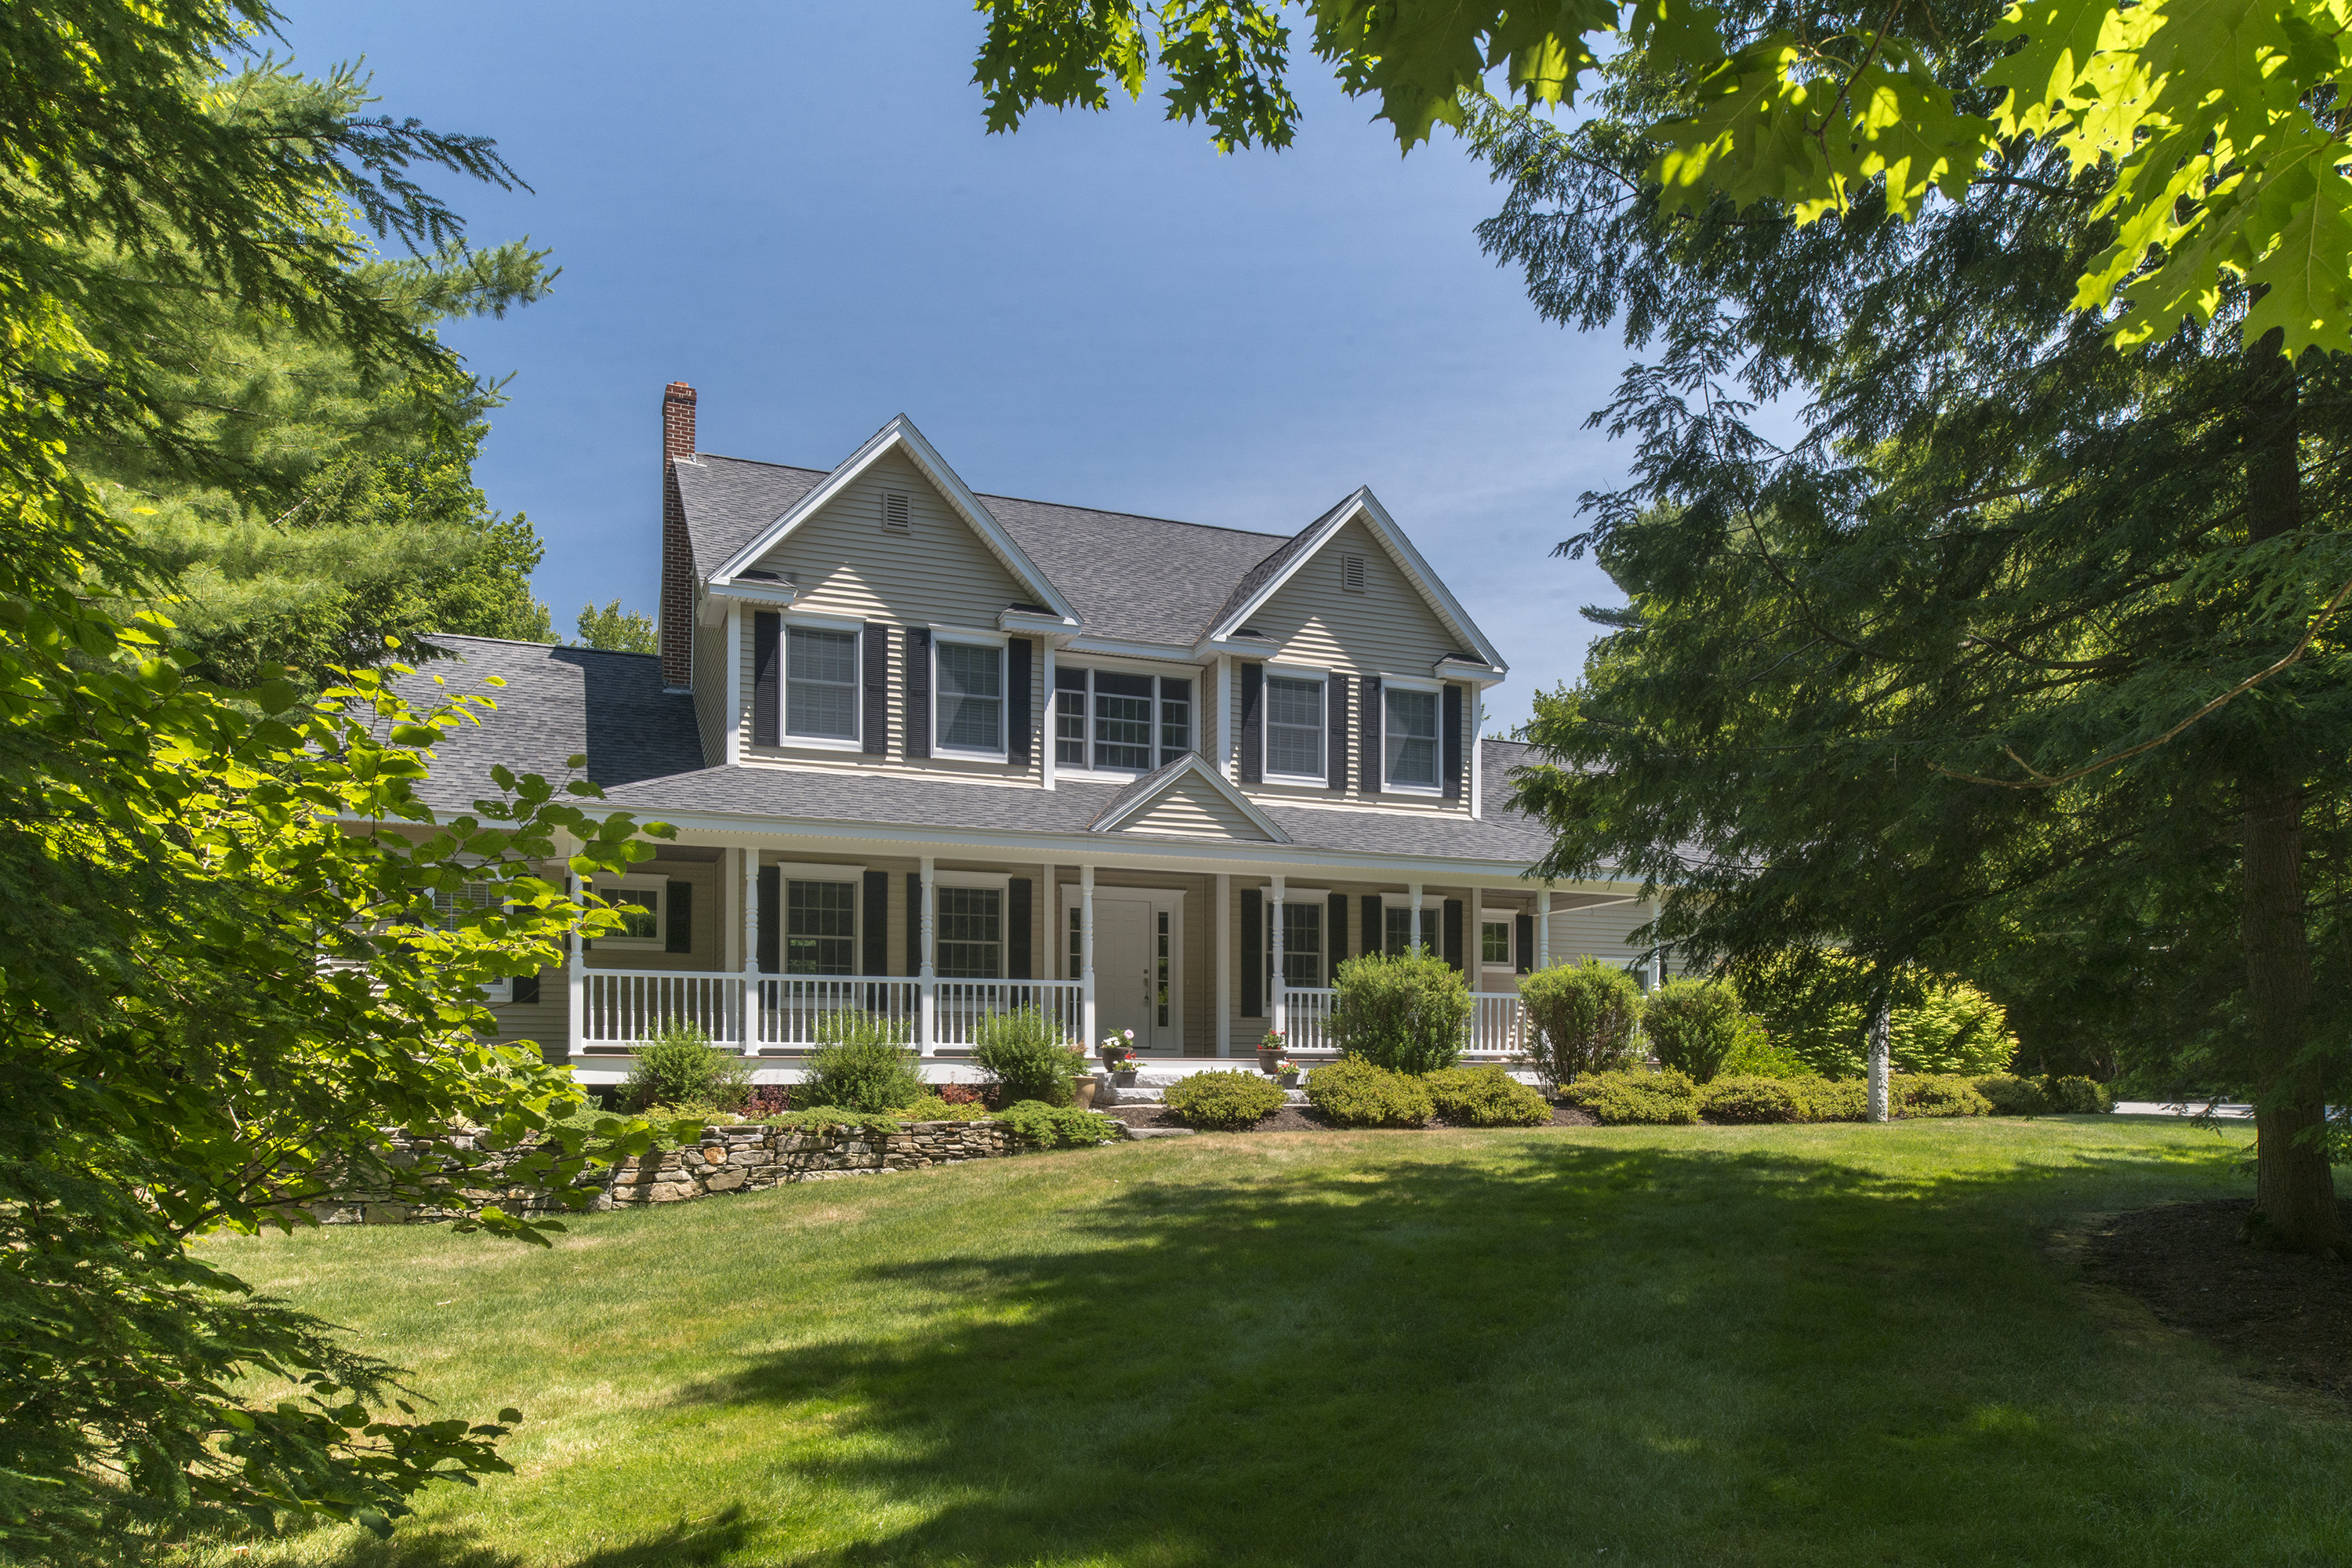 Single Family Home for Sale at 14 Shady Lane Falmouth, Maine, 04105 United States